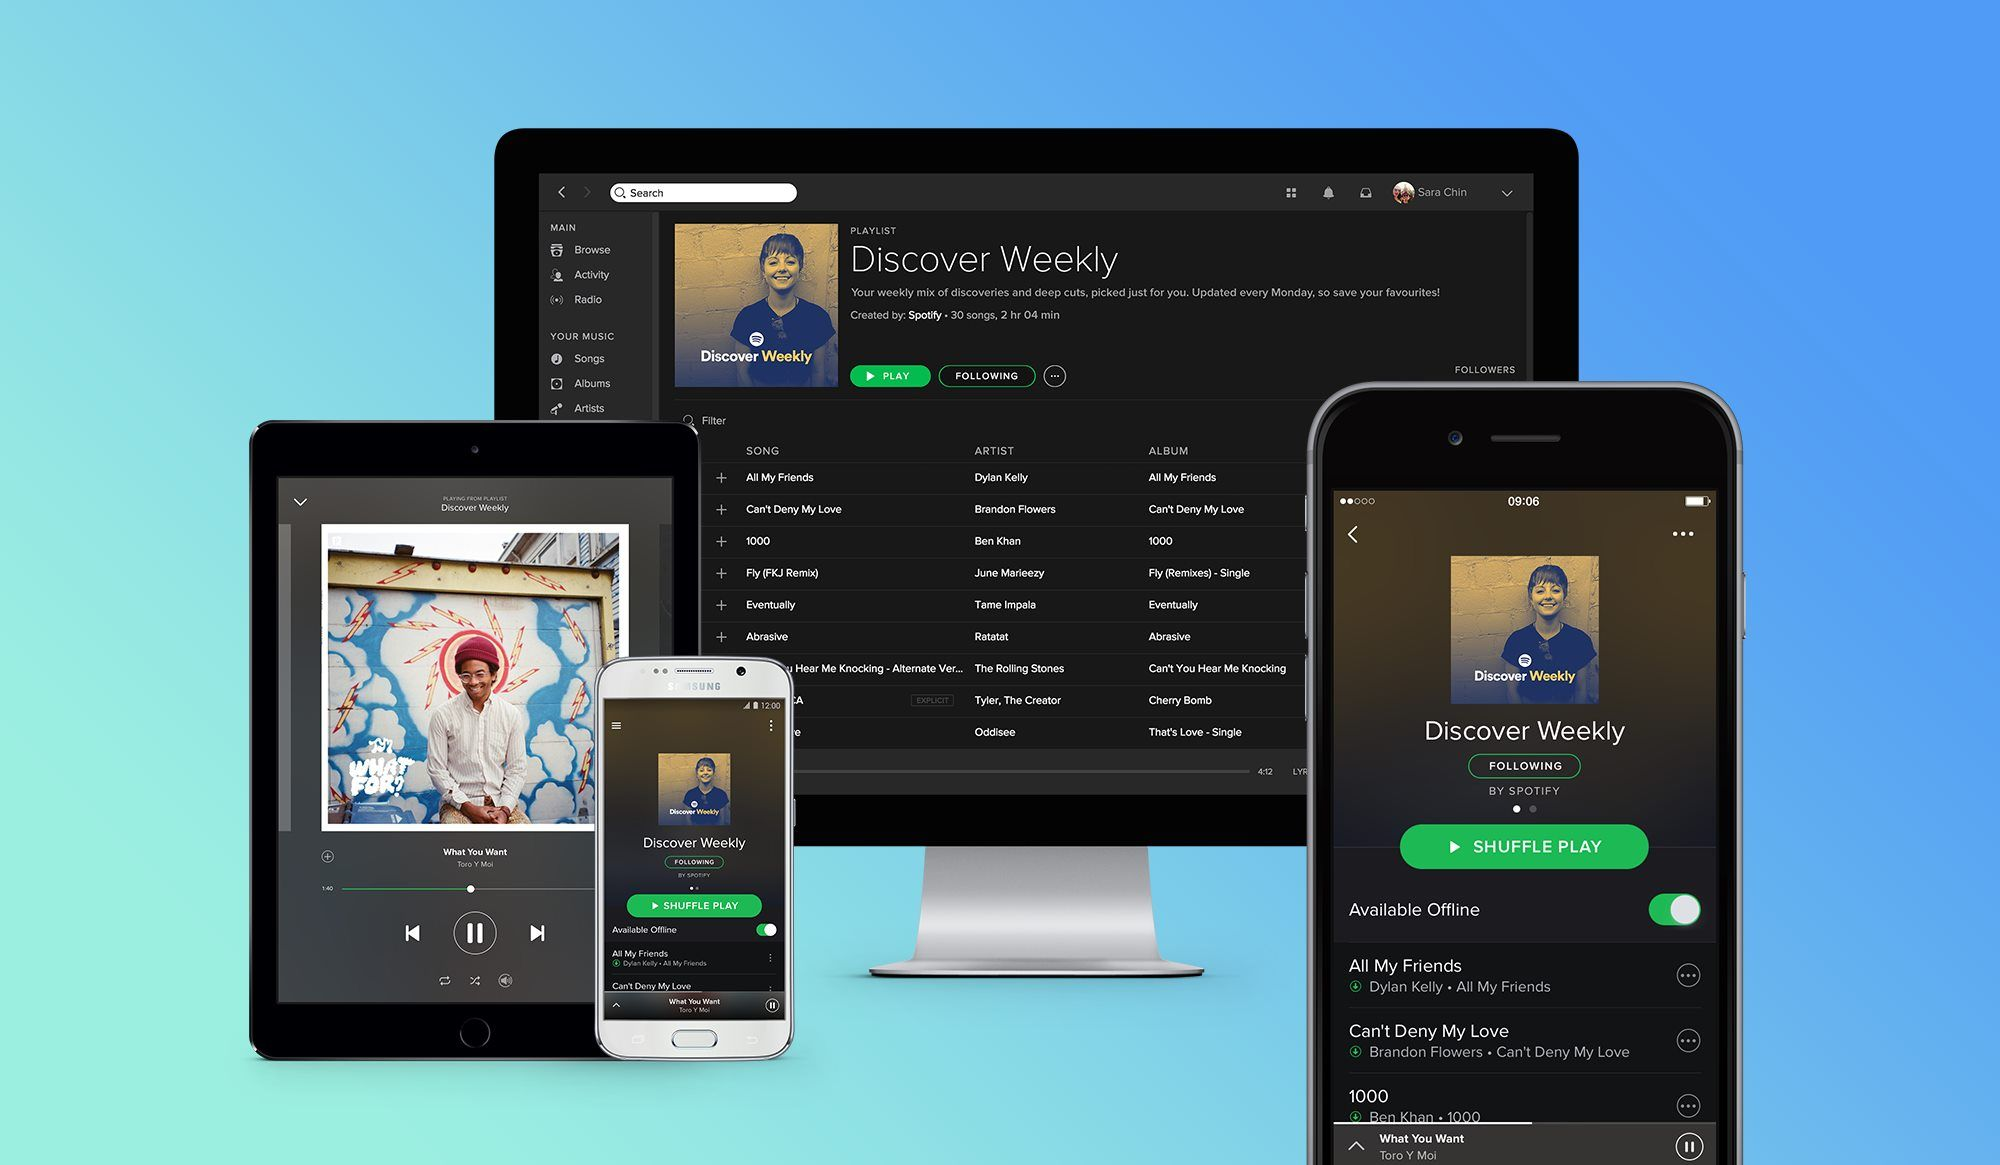 Spotify: Import Your Own Music